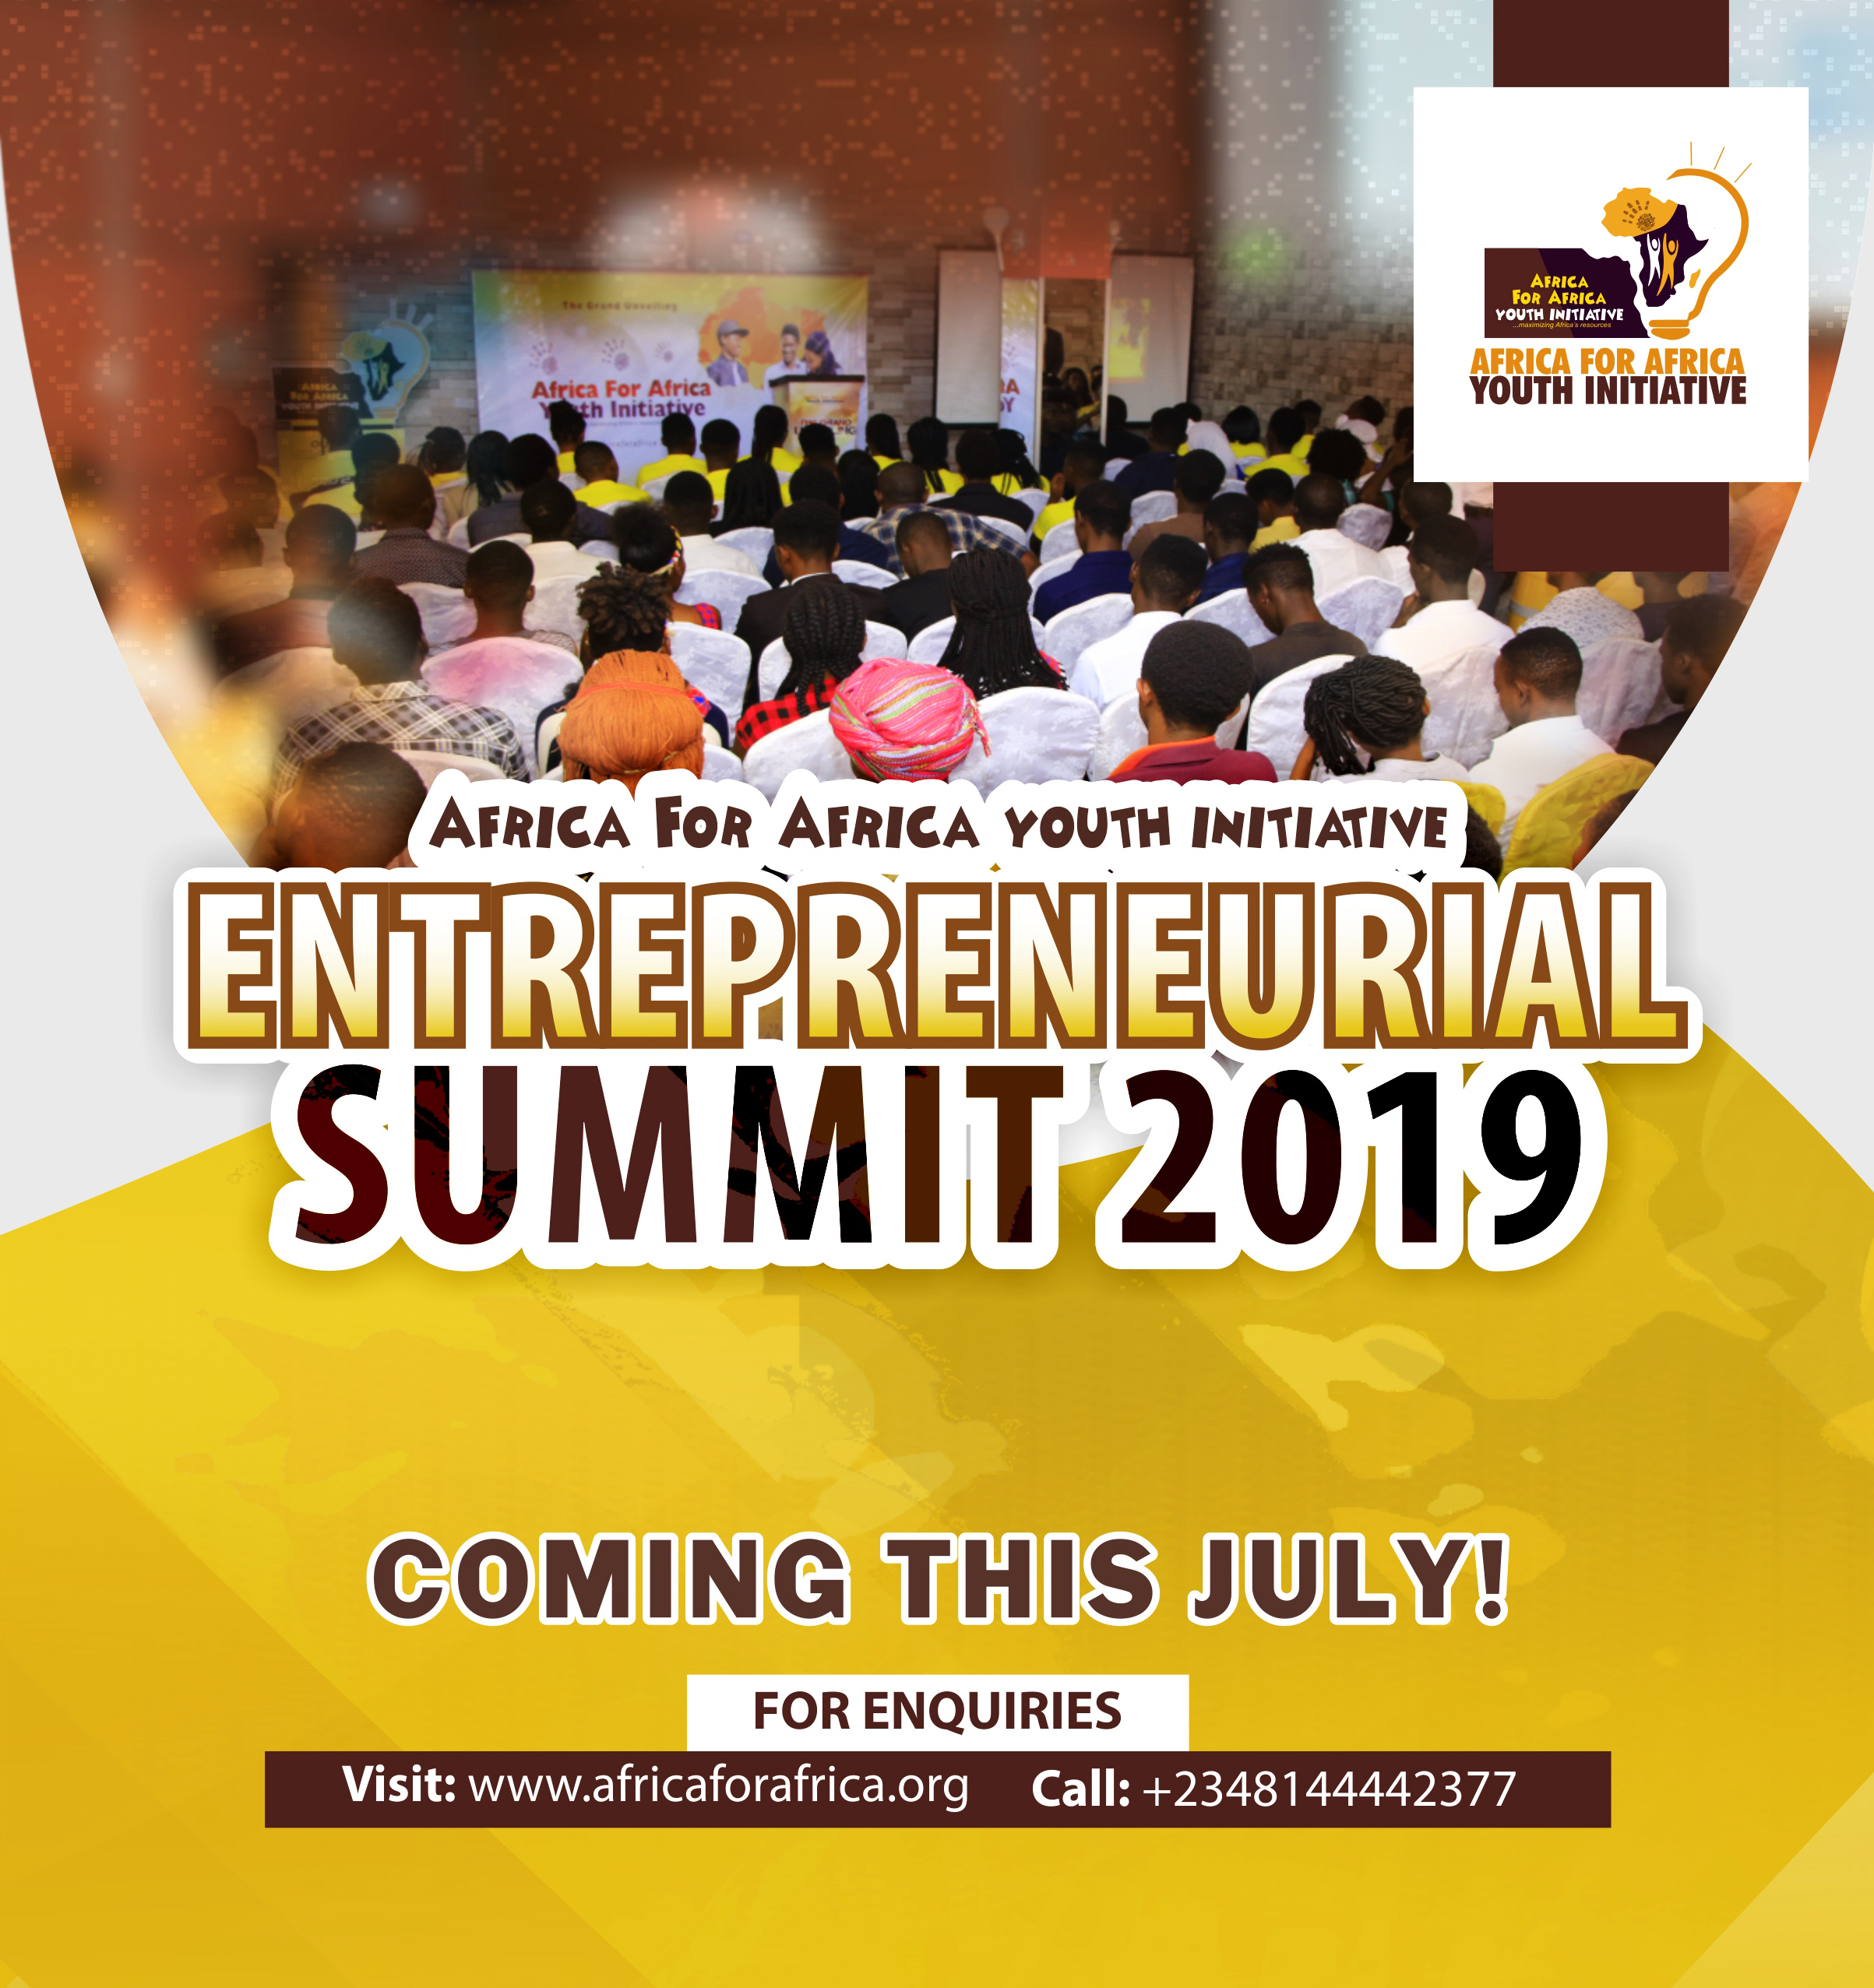 THE ENTREPRENEURIAL SUMMIT